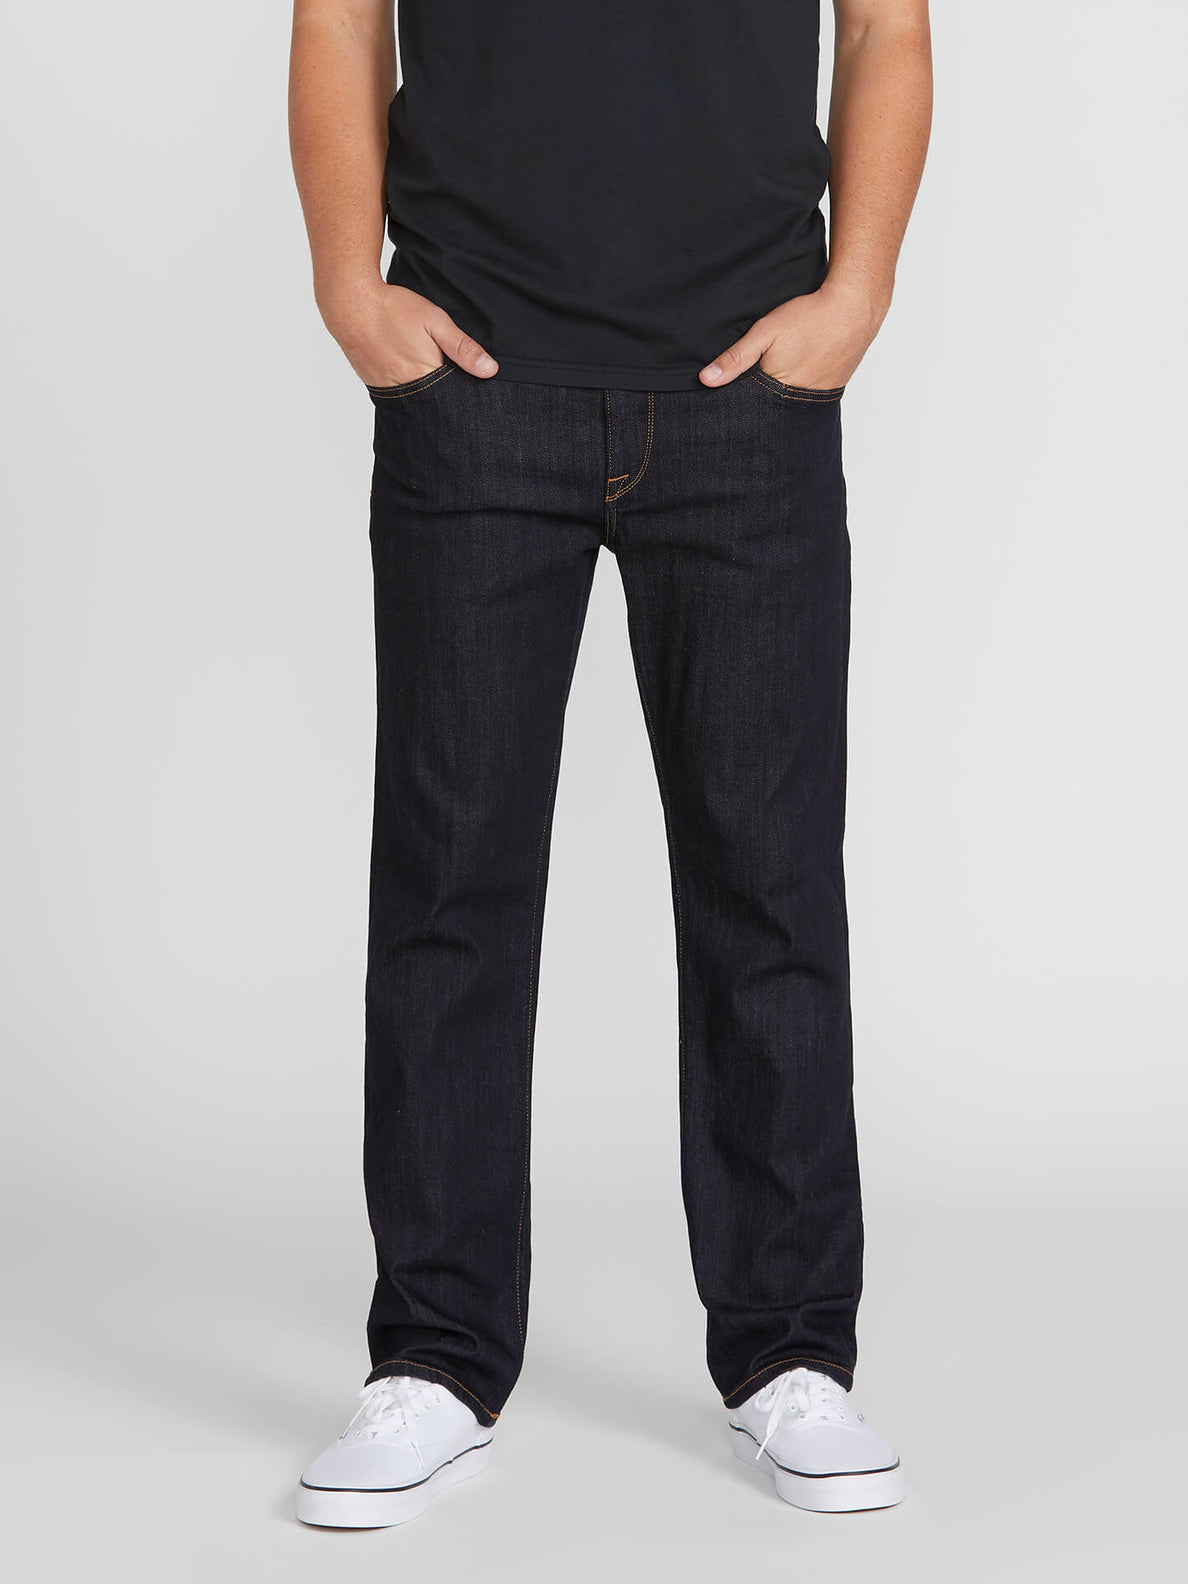 Solver Modern Fit Jeans - Rinse (A1931503_RNS) [1]